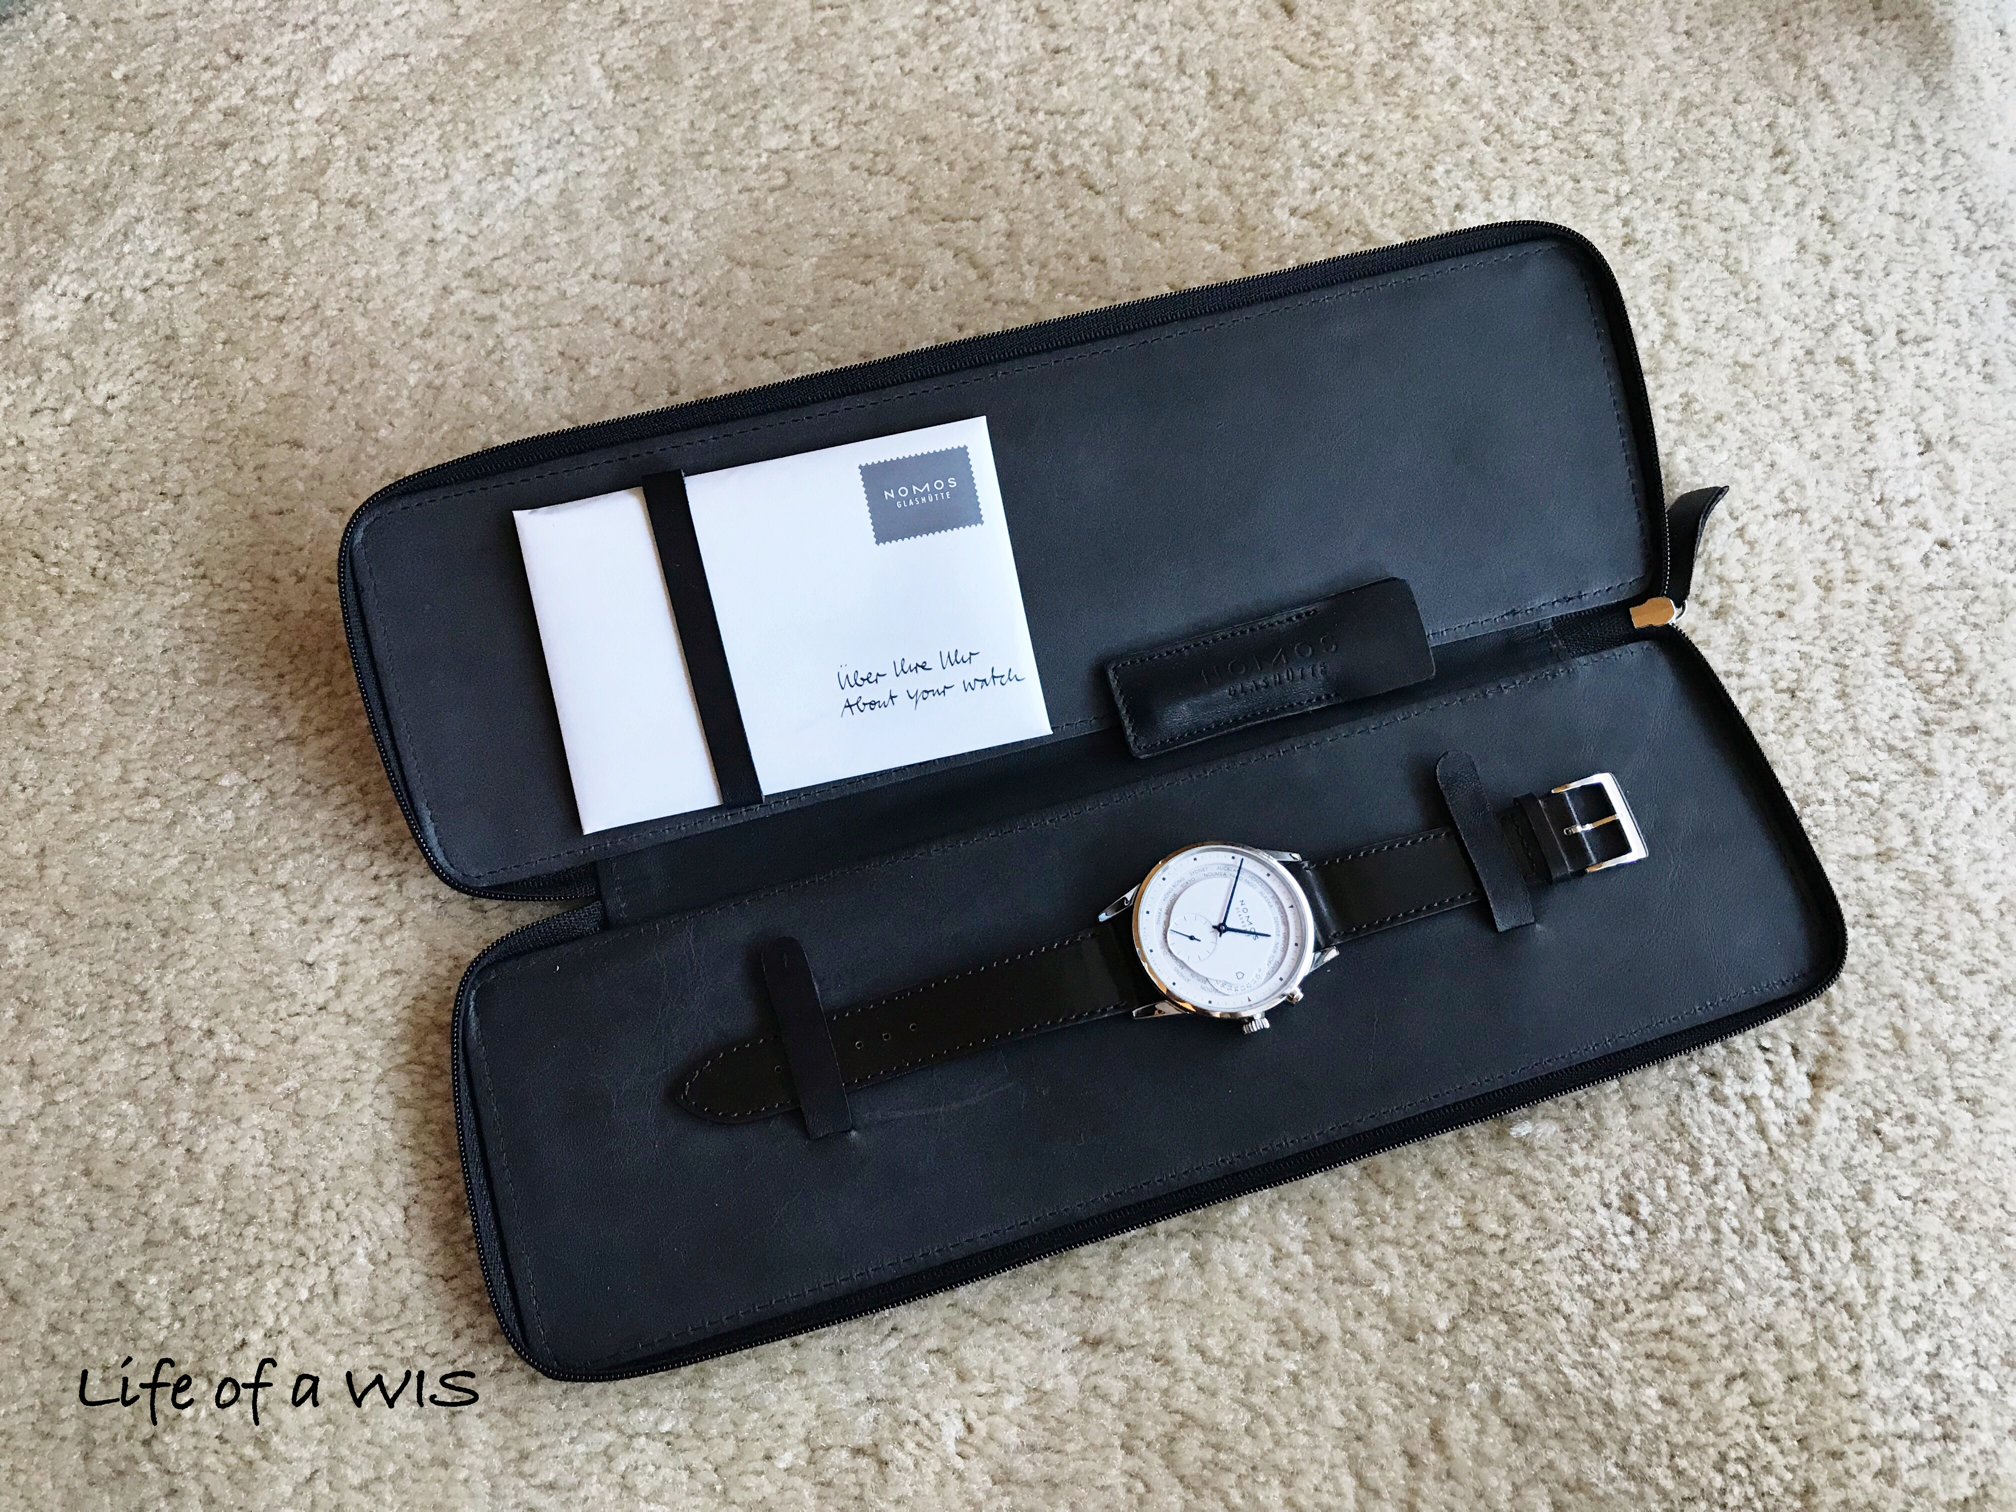 Watch comes in a nice and useful leather travel case.